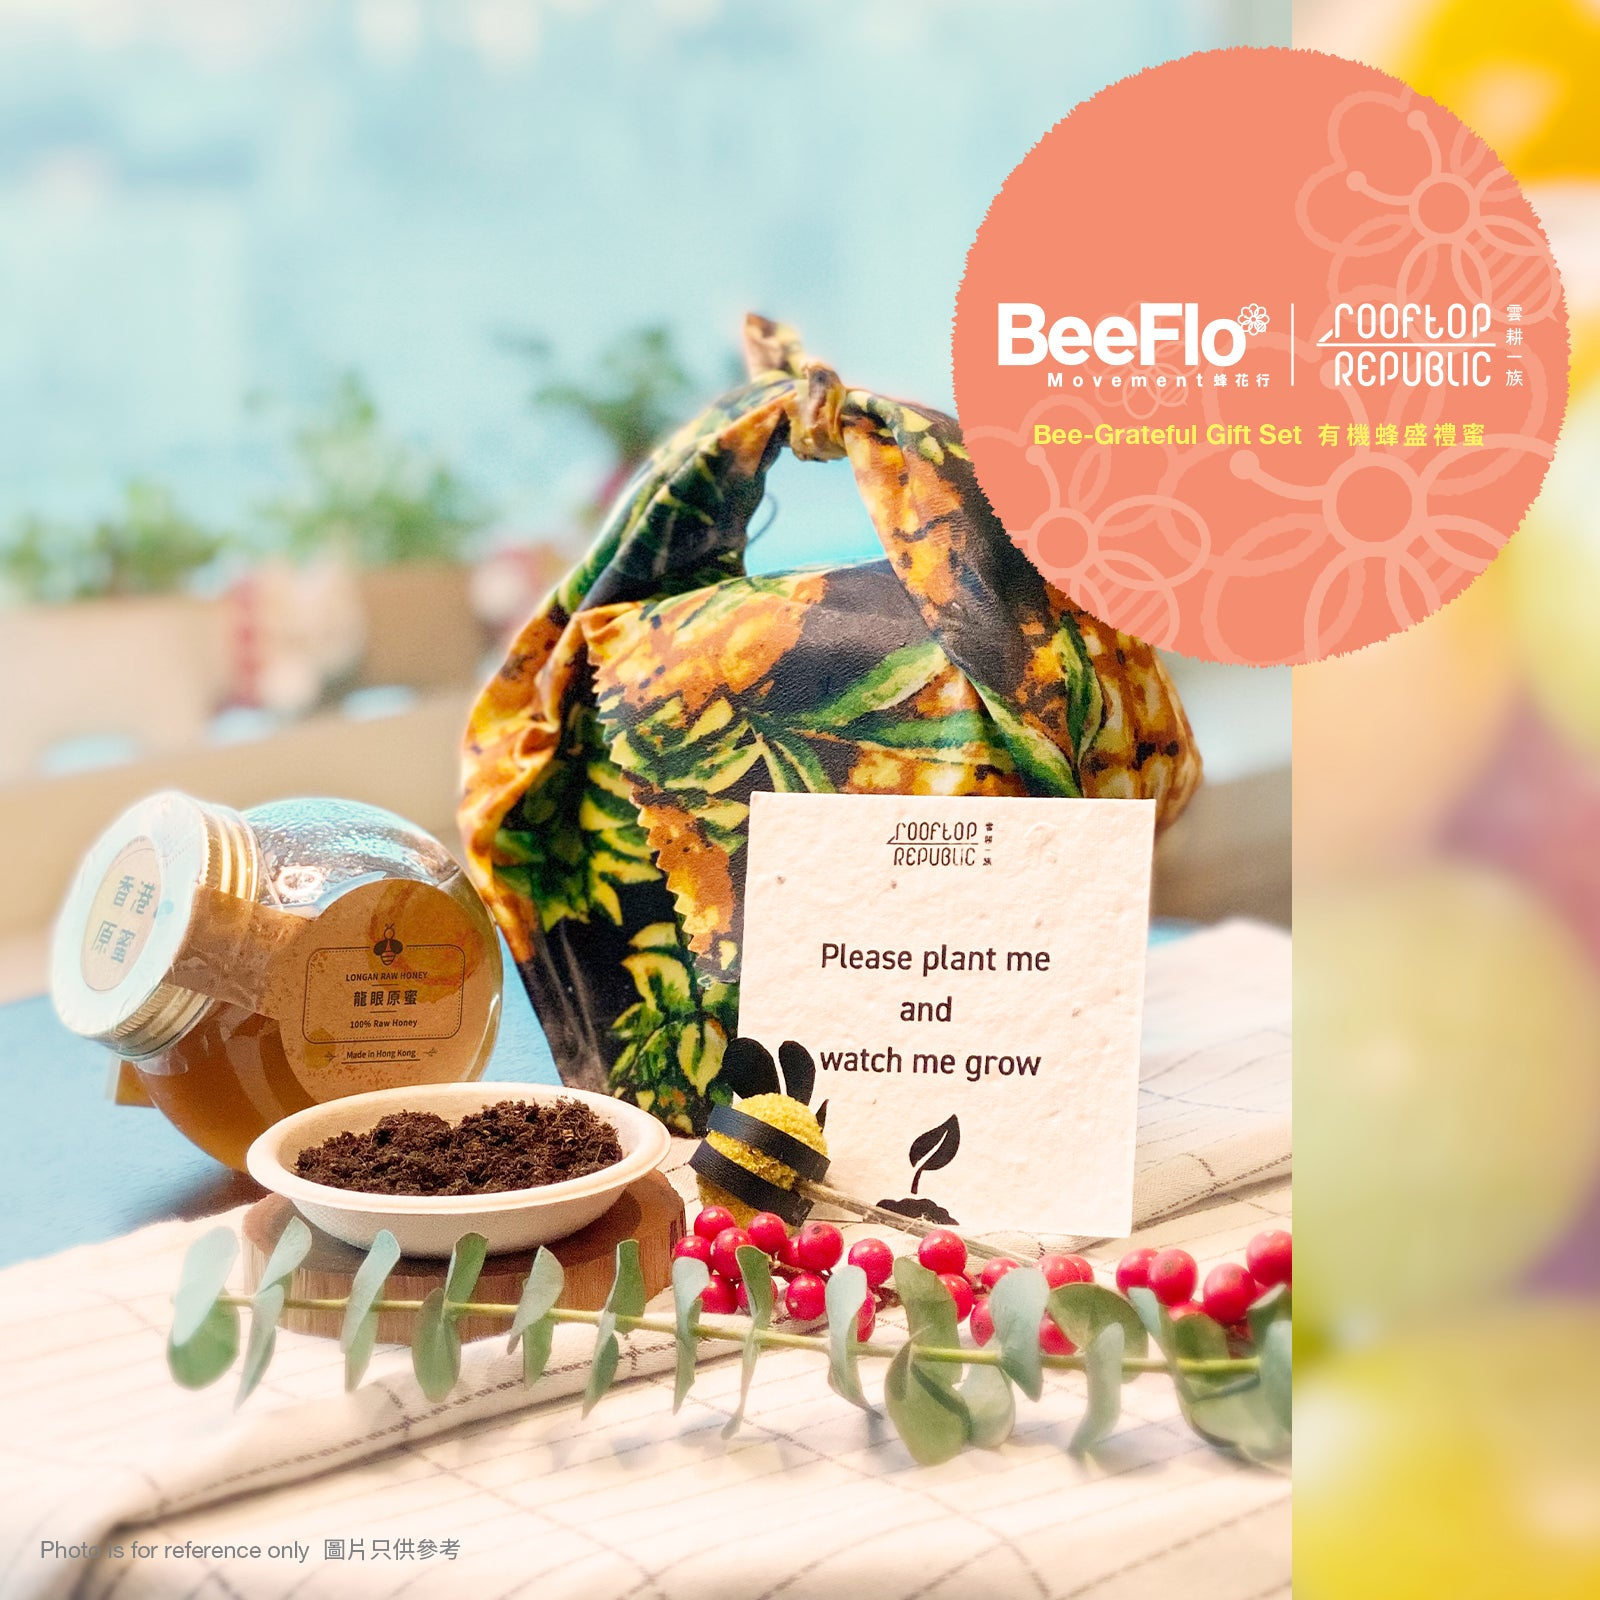 Bee-Grateful Gift Set | 蜂盛禮蜜